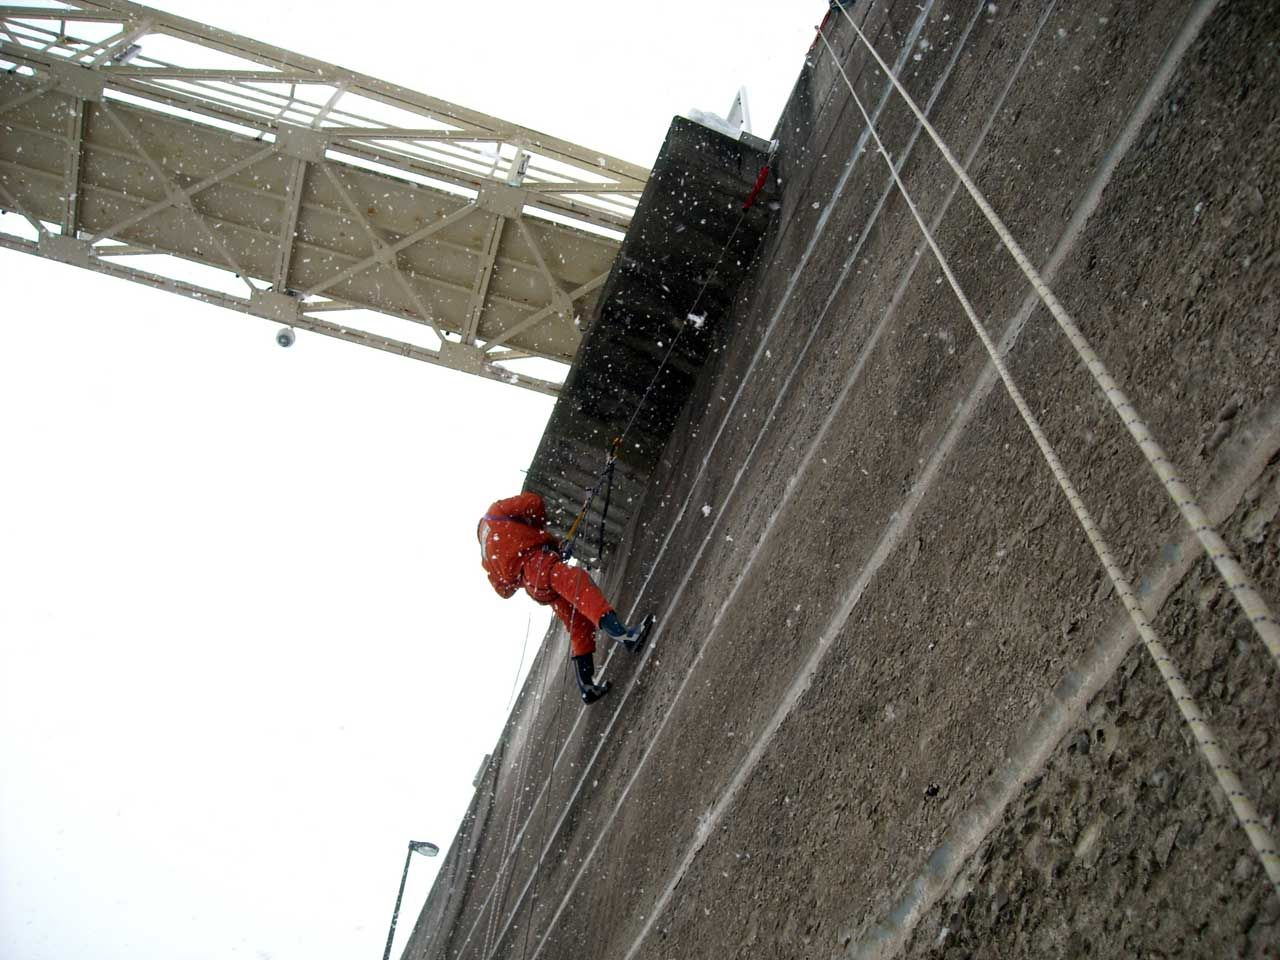 Bridge inspection in rope access